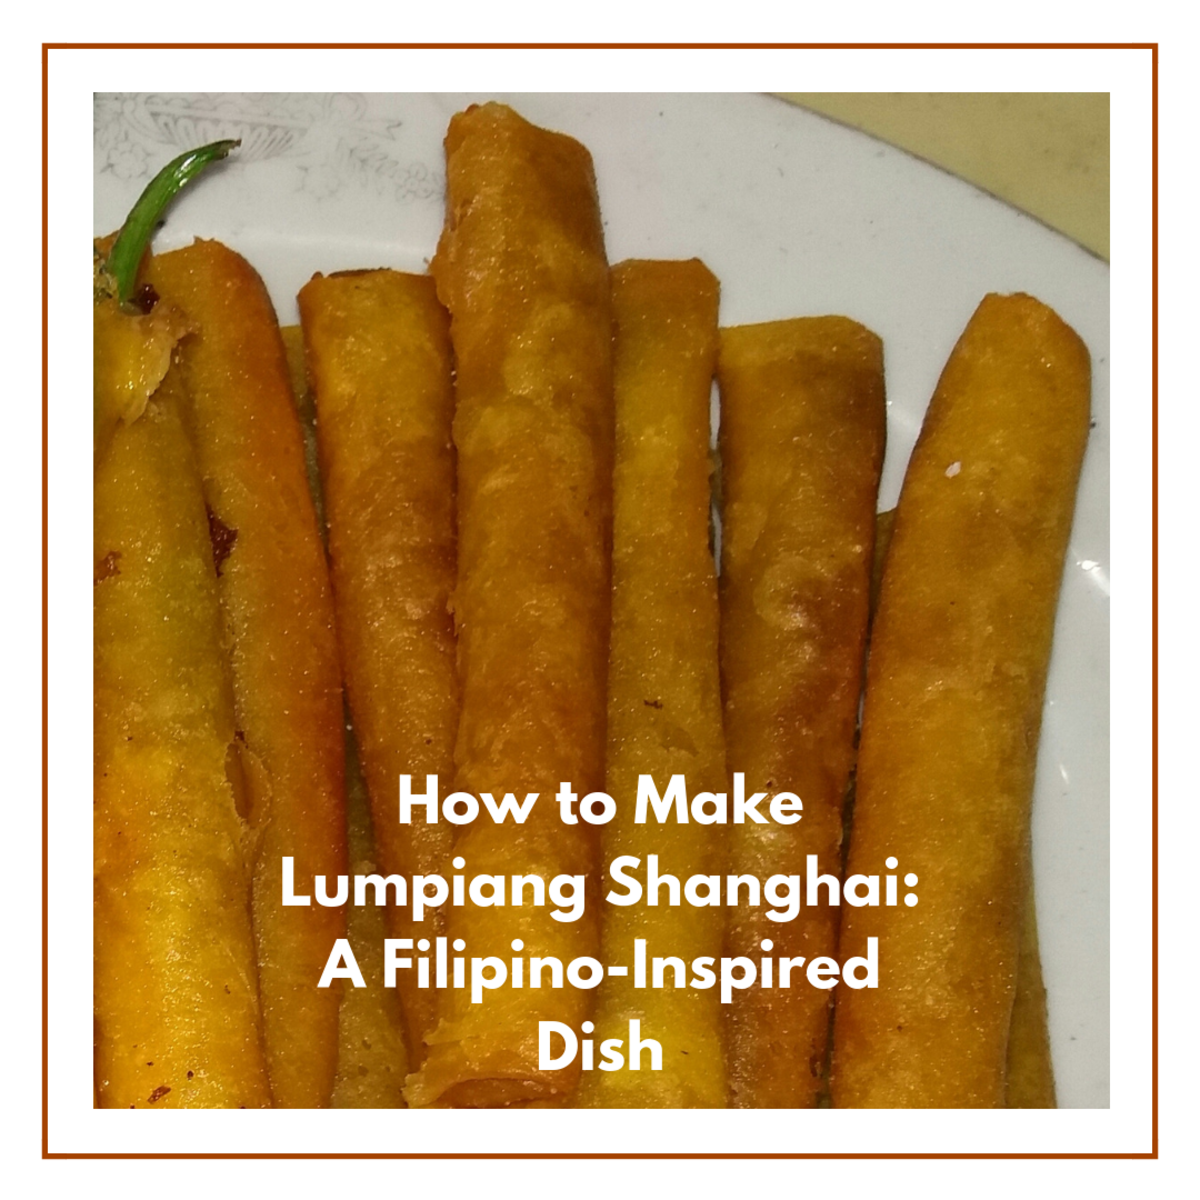 How to make lumpiang Shanghai, a Filipino-inspired dish